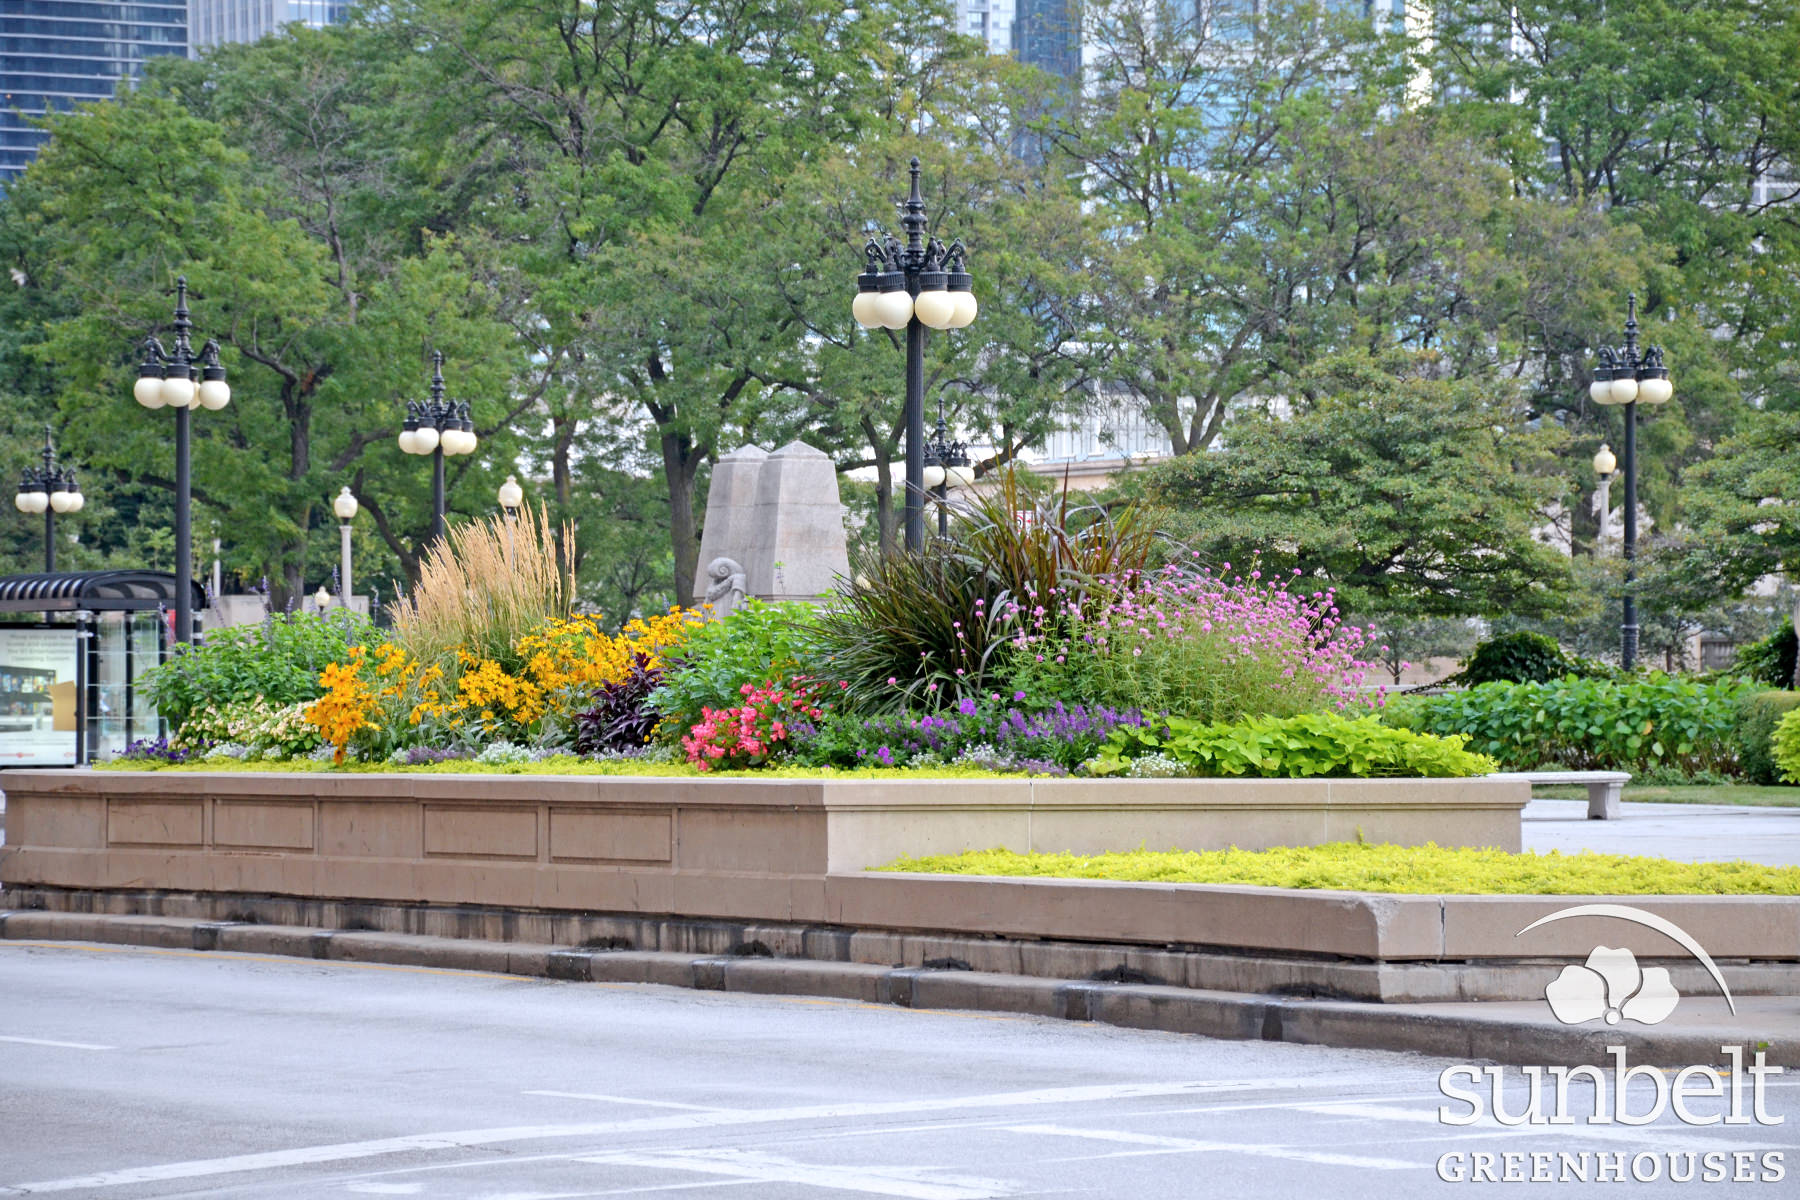 2015-08-19-chicago-landscaping-12.jpg